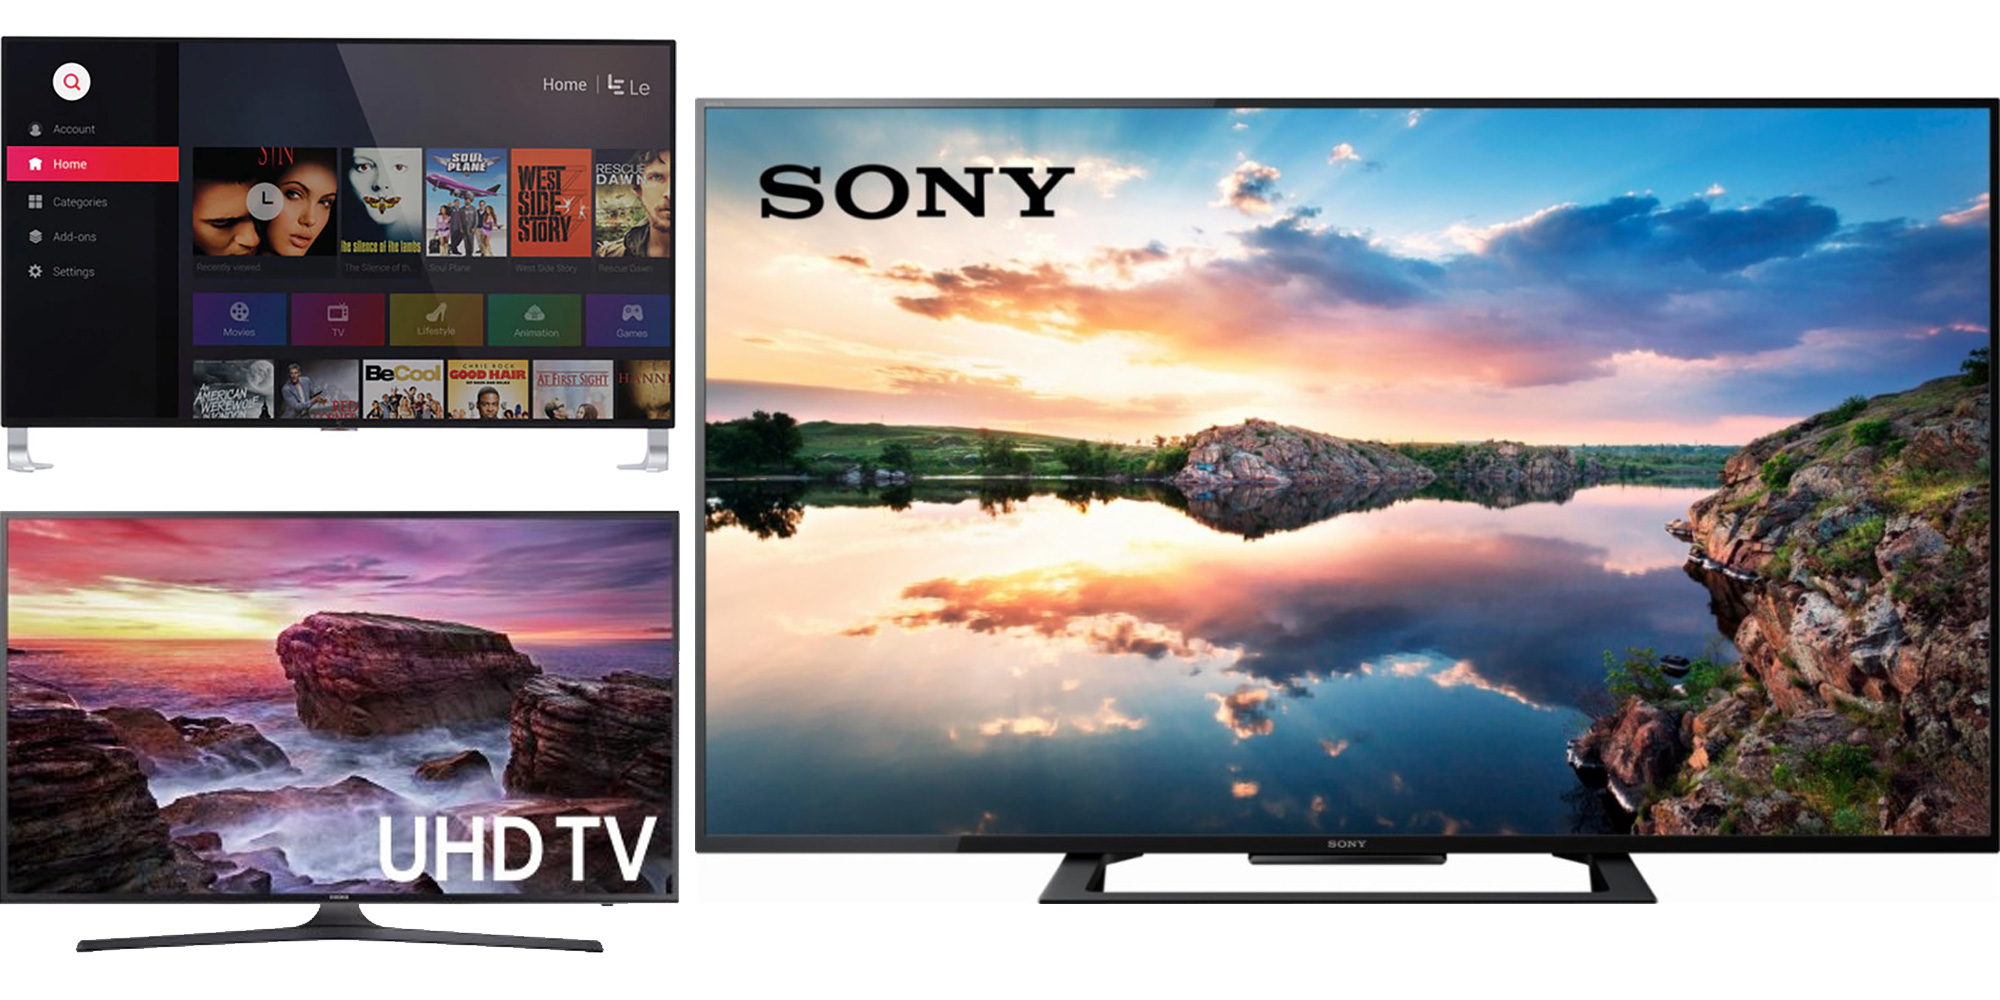 Pre-Cyber Monday 4K TV deals: 43-inch HDR $250, 55-inch $350, more $350